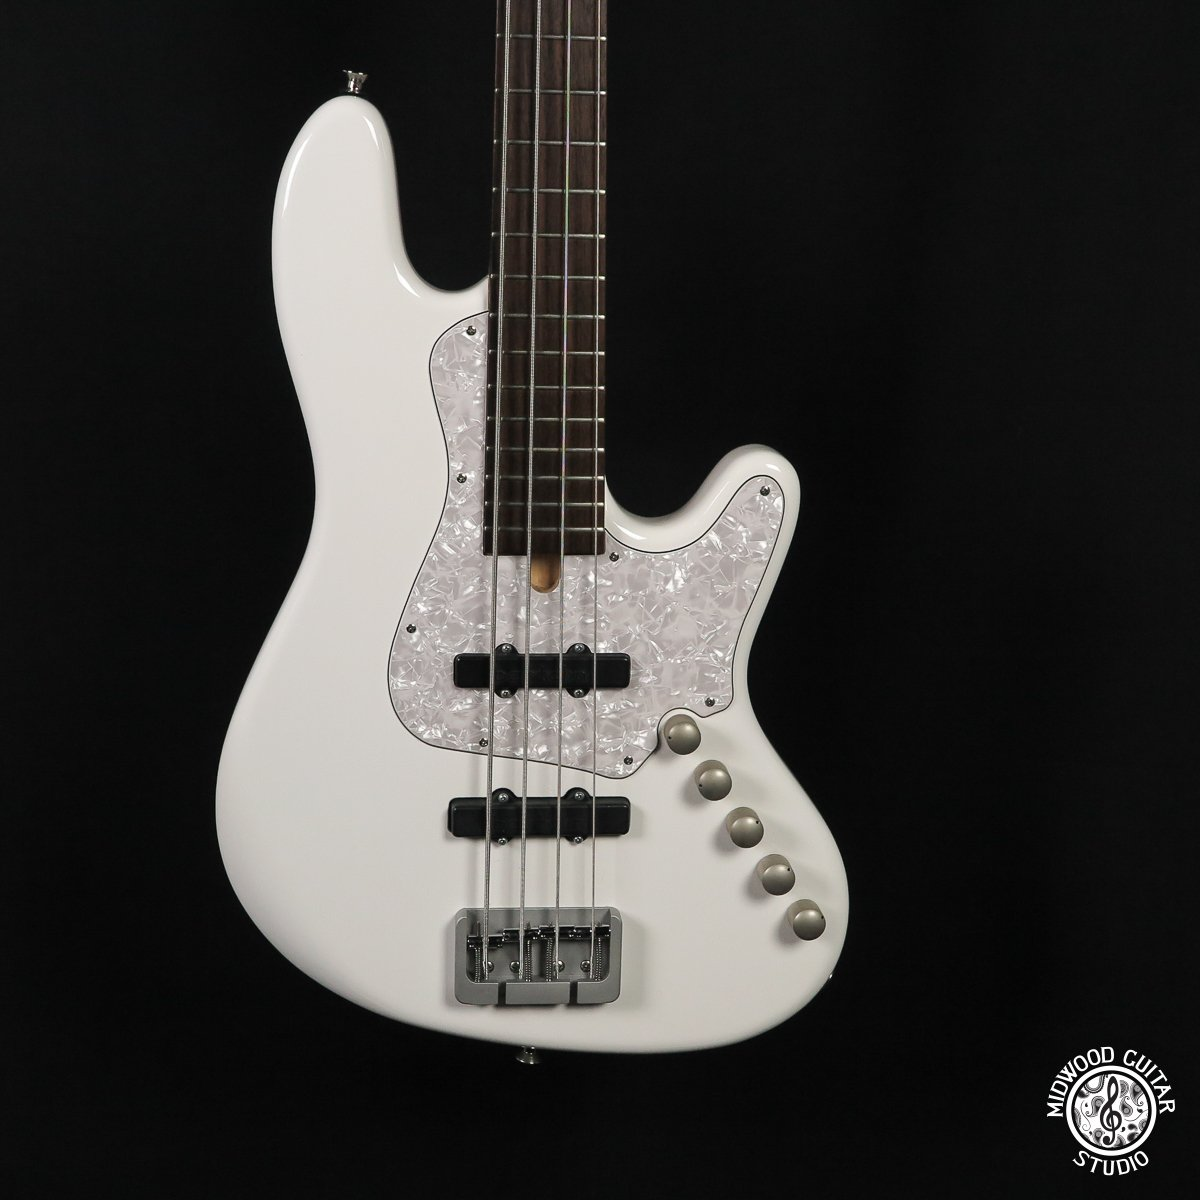 Elrick Expat 4 String White - Dot Inlays (Demo)